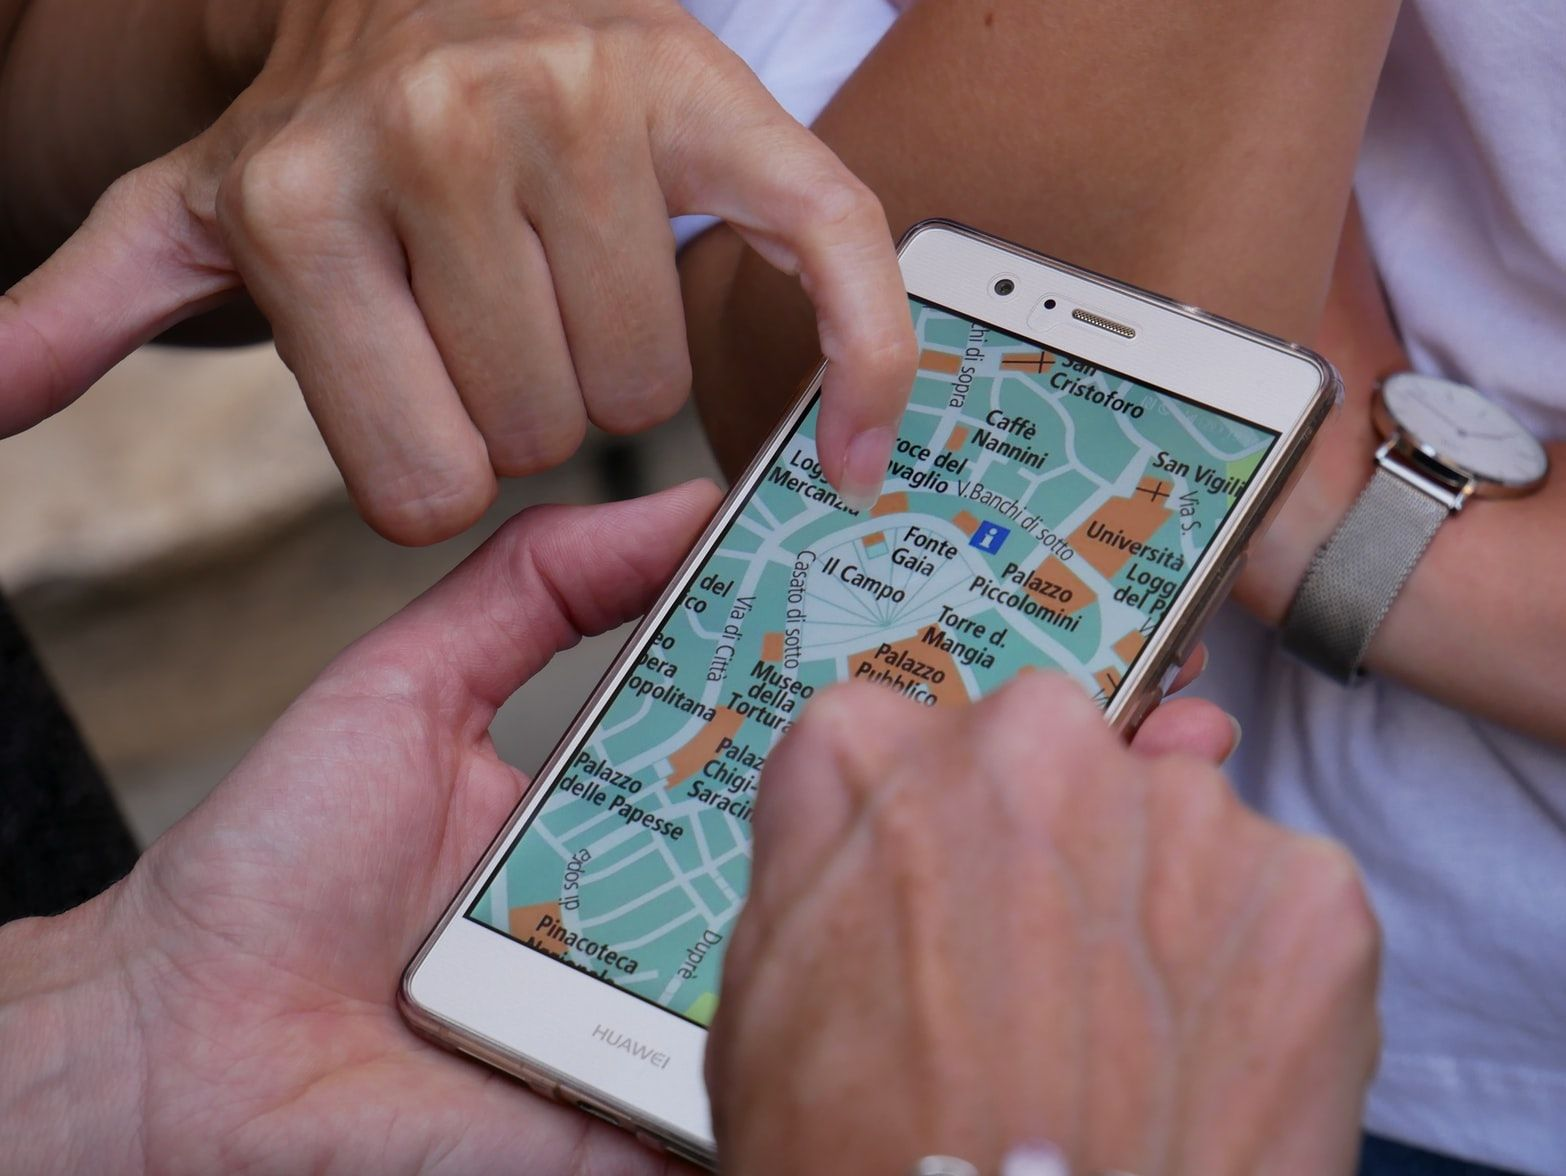 Phone with maps app